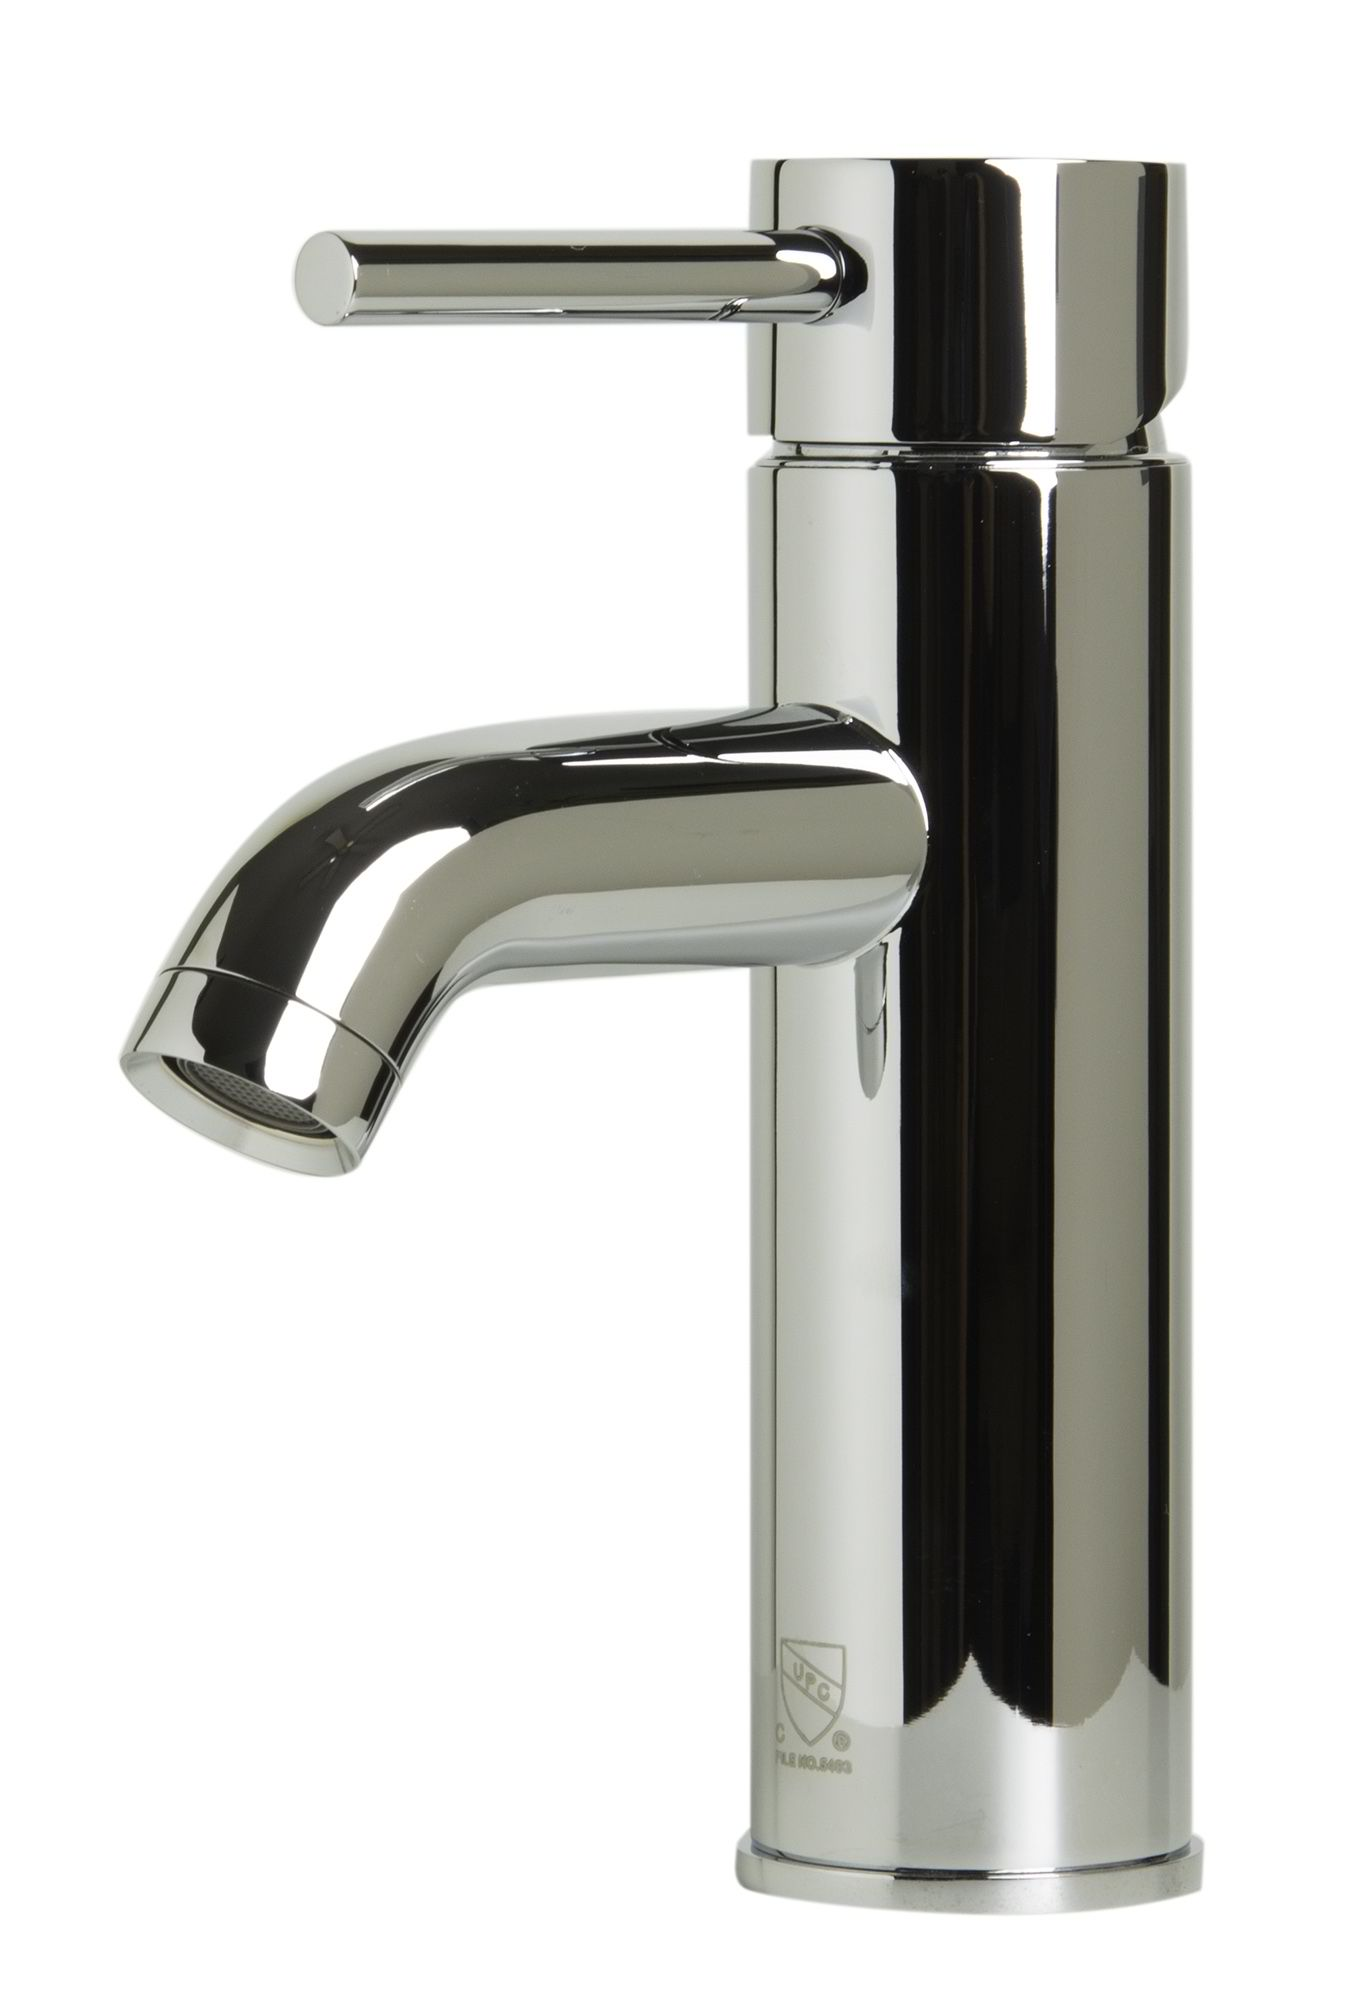 ALFI Brand AB1433 Brushed Nickel or Polished Chrome Single Lever Bathroom Faucet